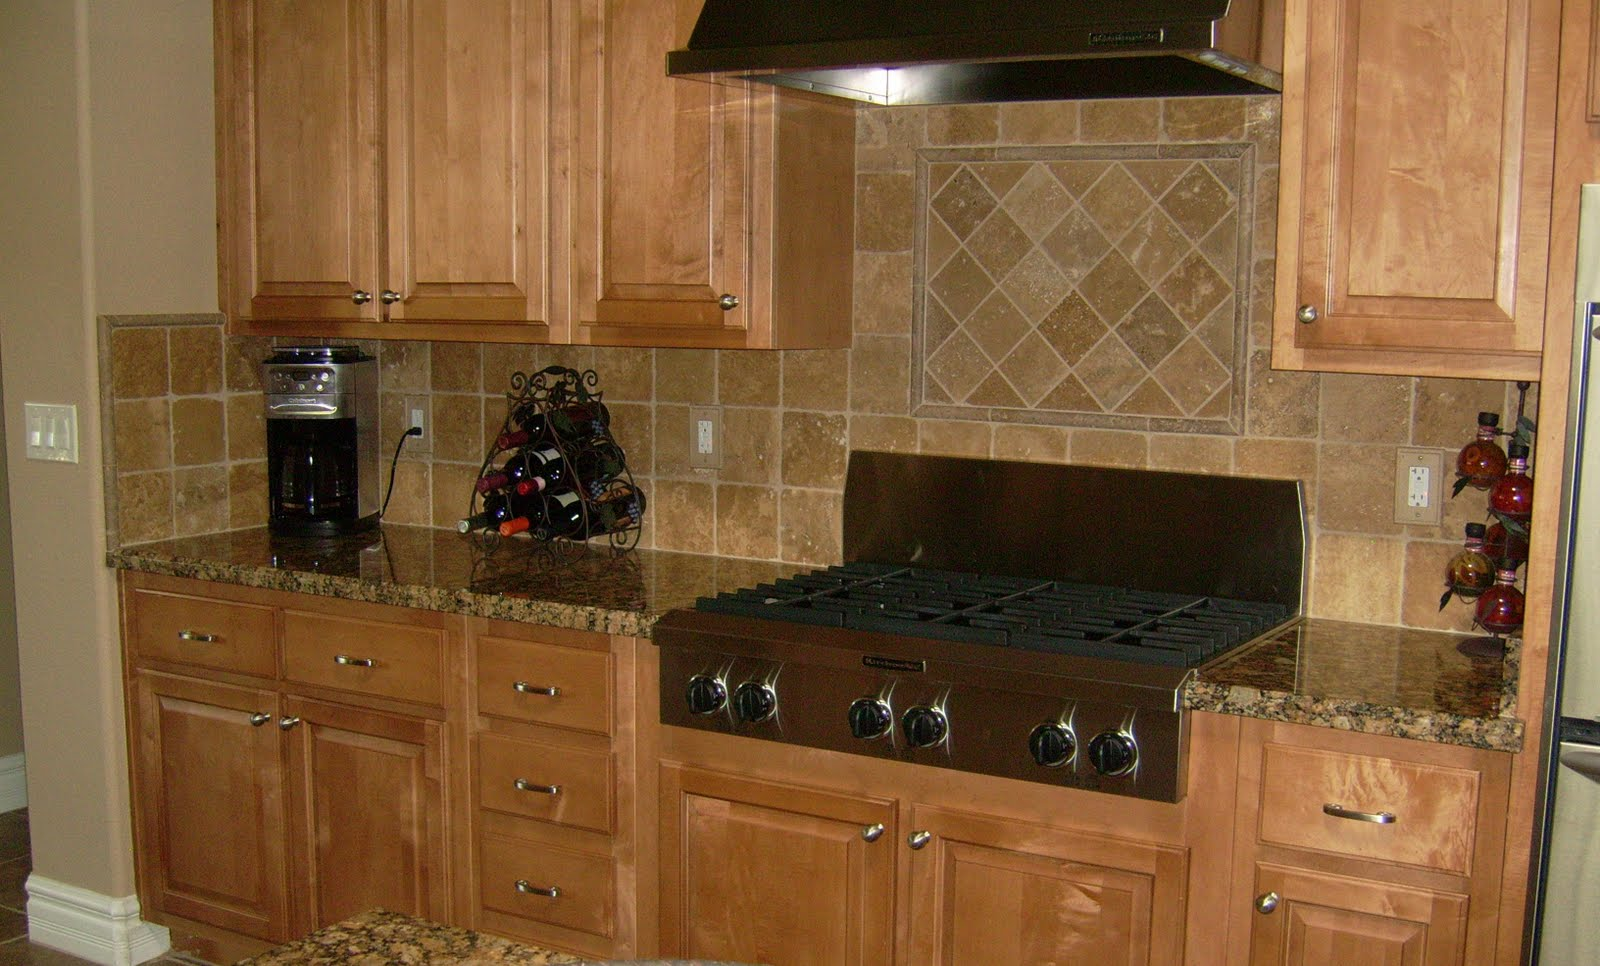 kitchen backsplash ideas tumbled stone kitchen backsplash clear white laminated kitchen backsplash ideas design